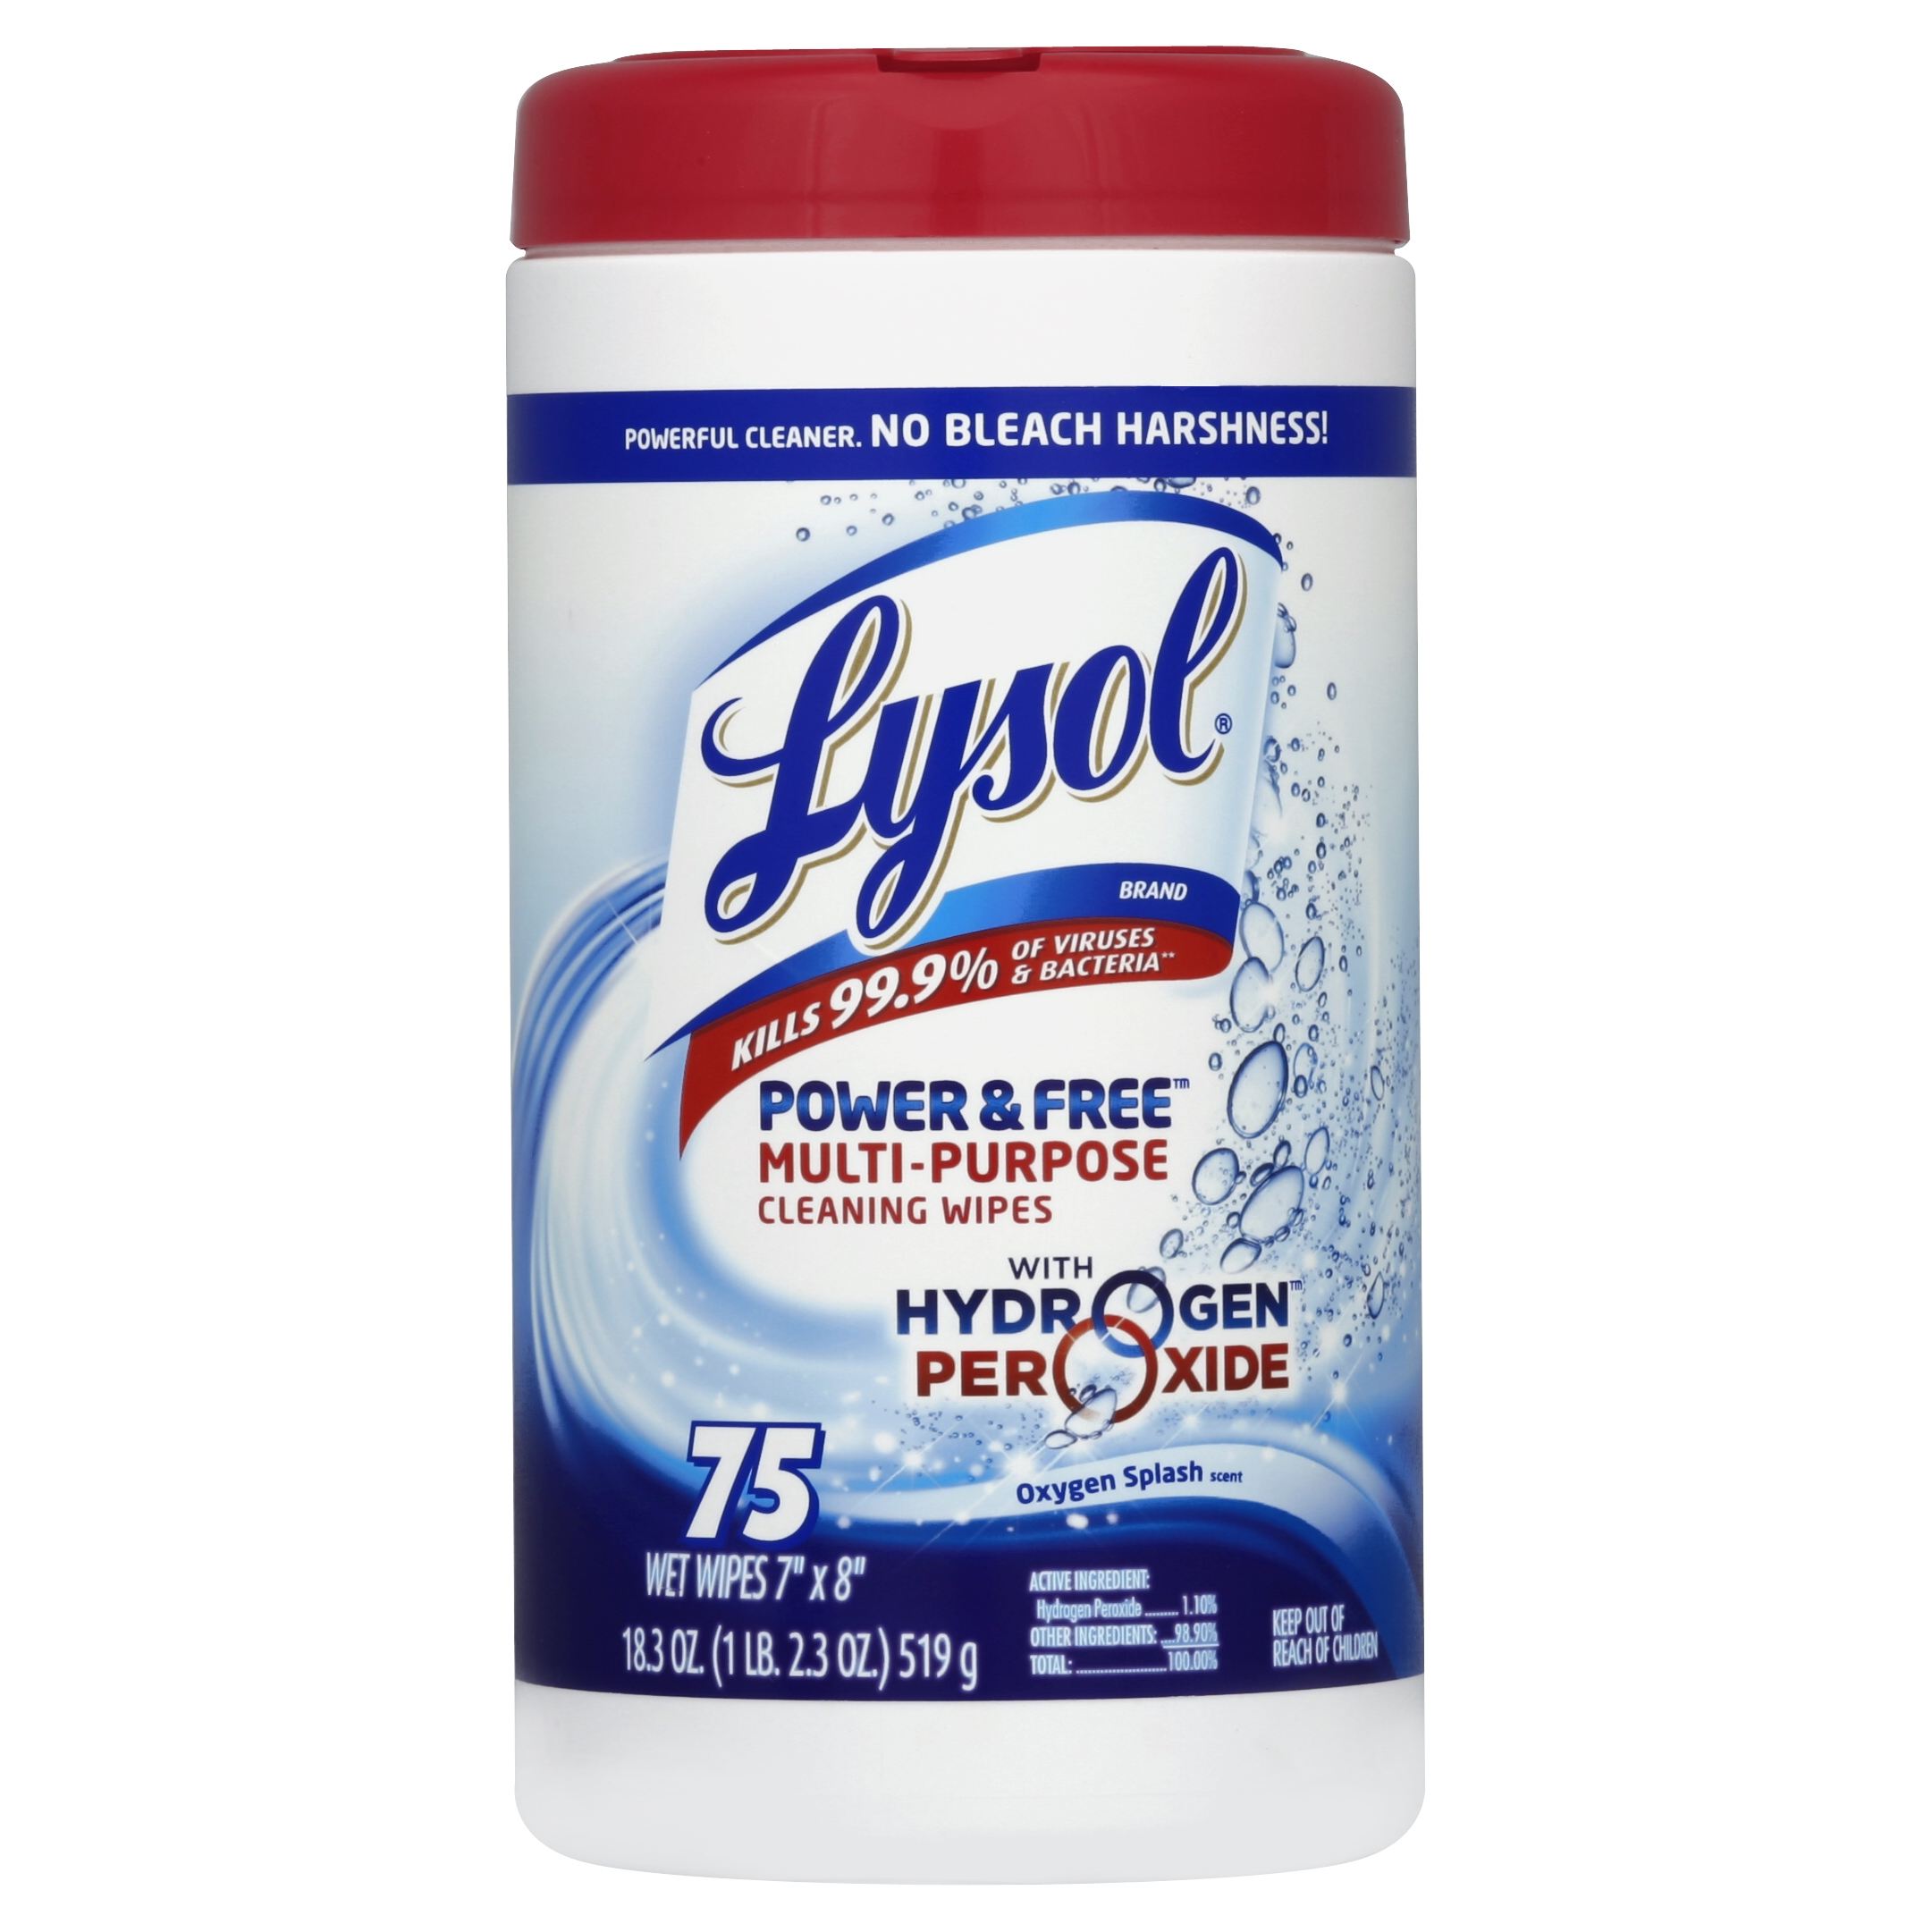 Lysol Power and Free Disinfecting Multi-Purpose Wipes, Oxygen Splash, 75 Count